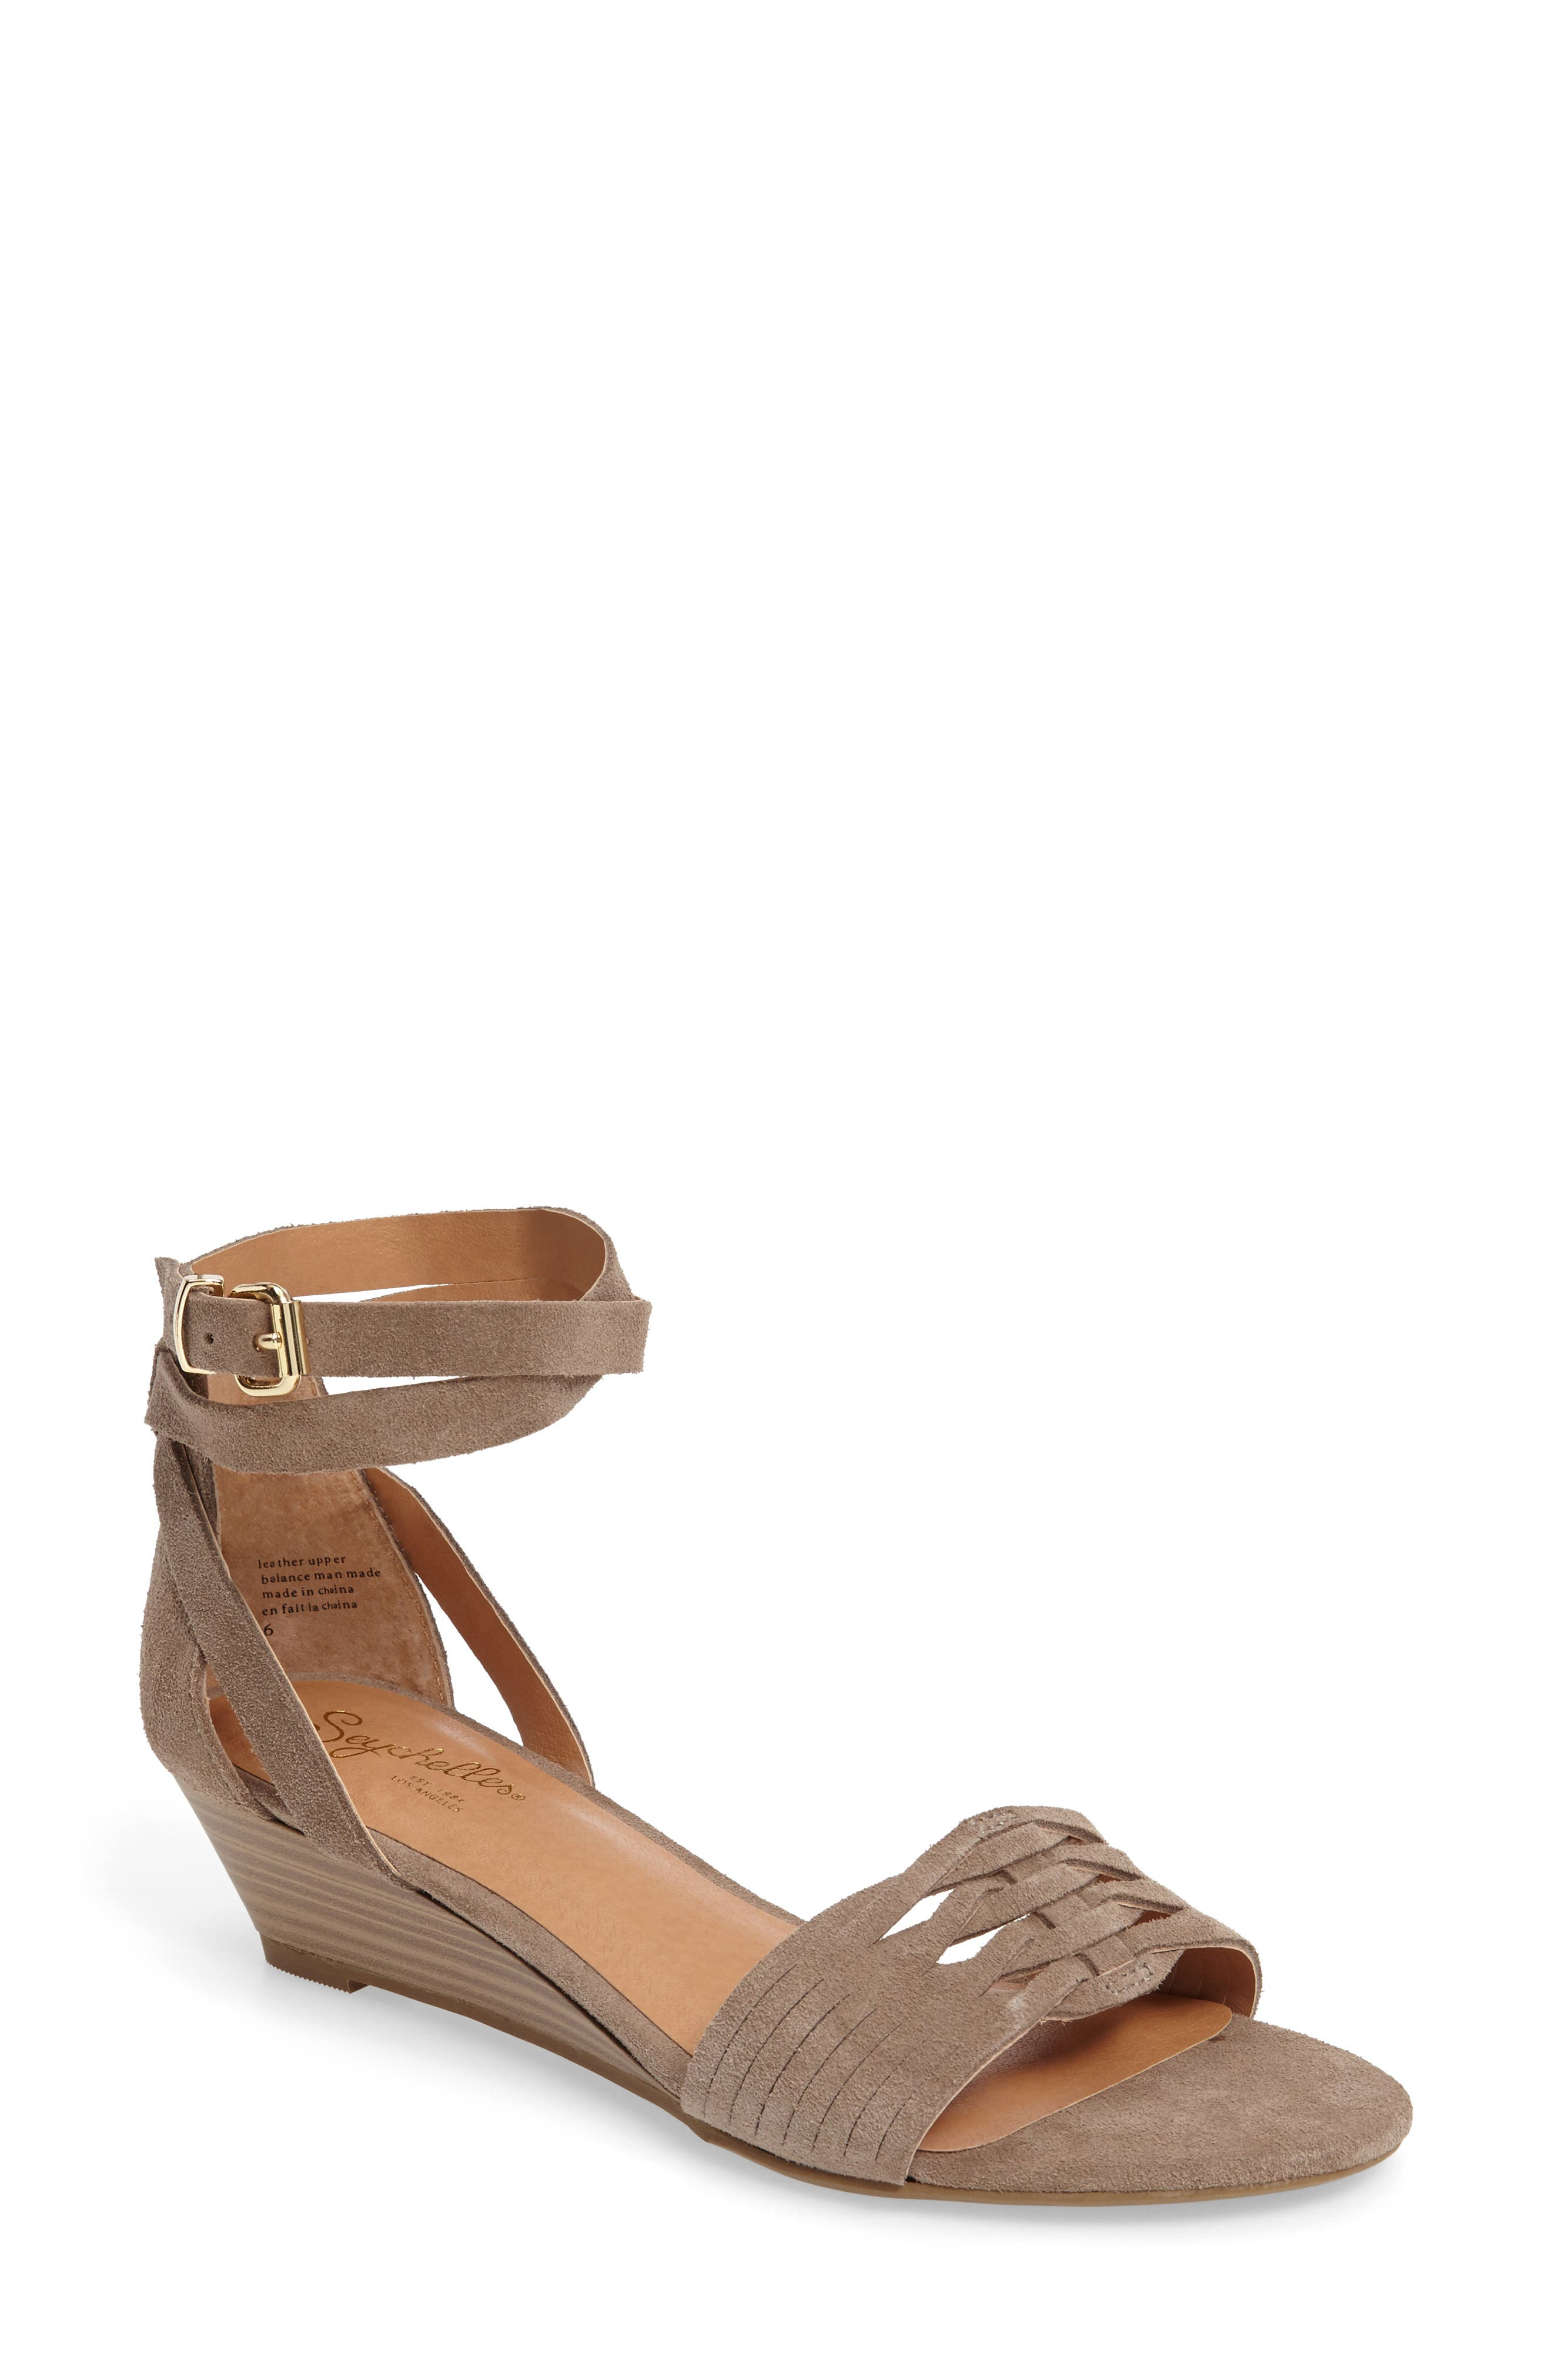 Sincere Wraparound Wedge Sandal,                             Main thumbnail 2, color,